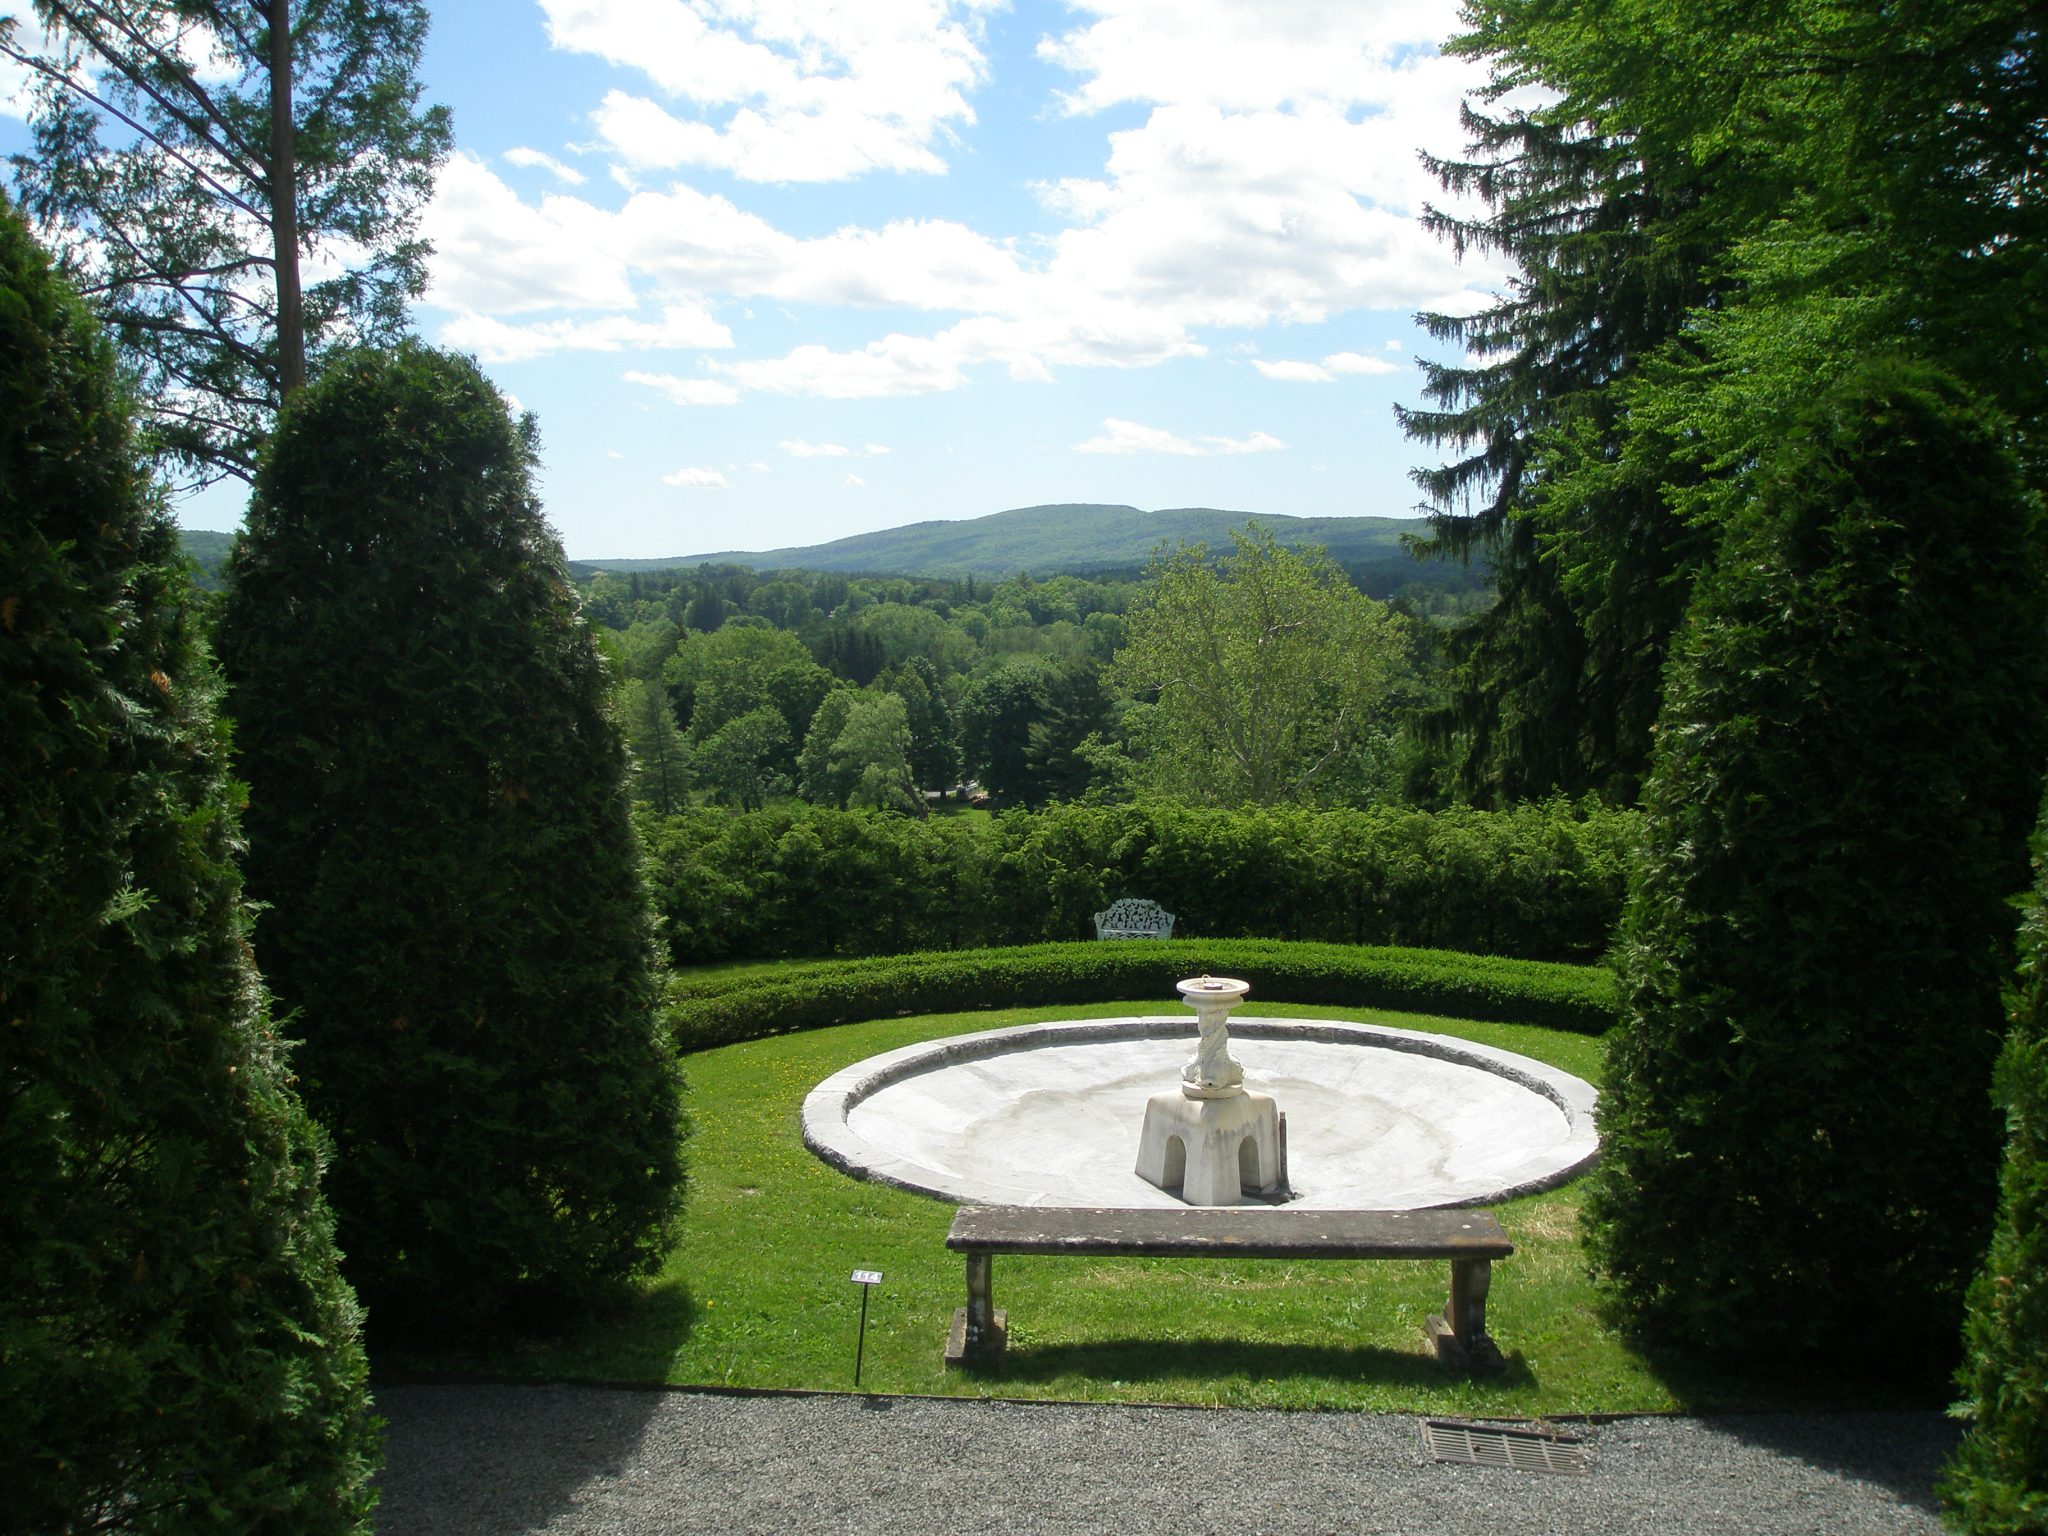 Nathan Barrett's Evergreen Garden; with view toward the Western hills.